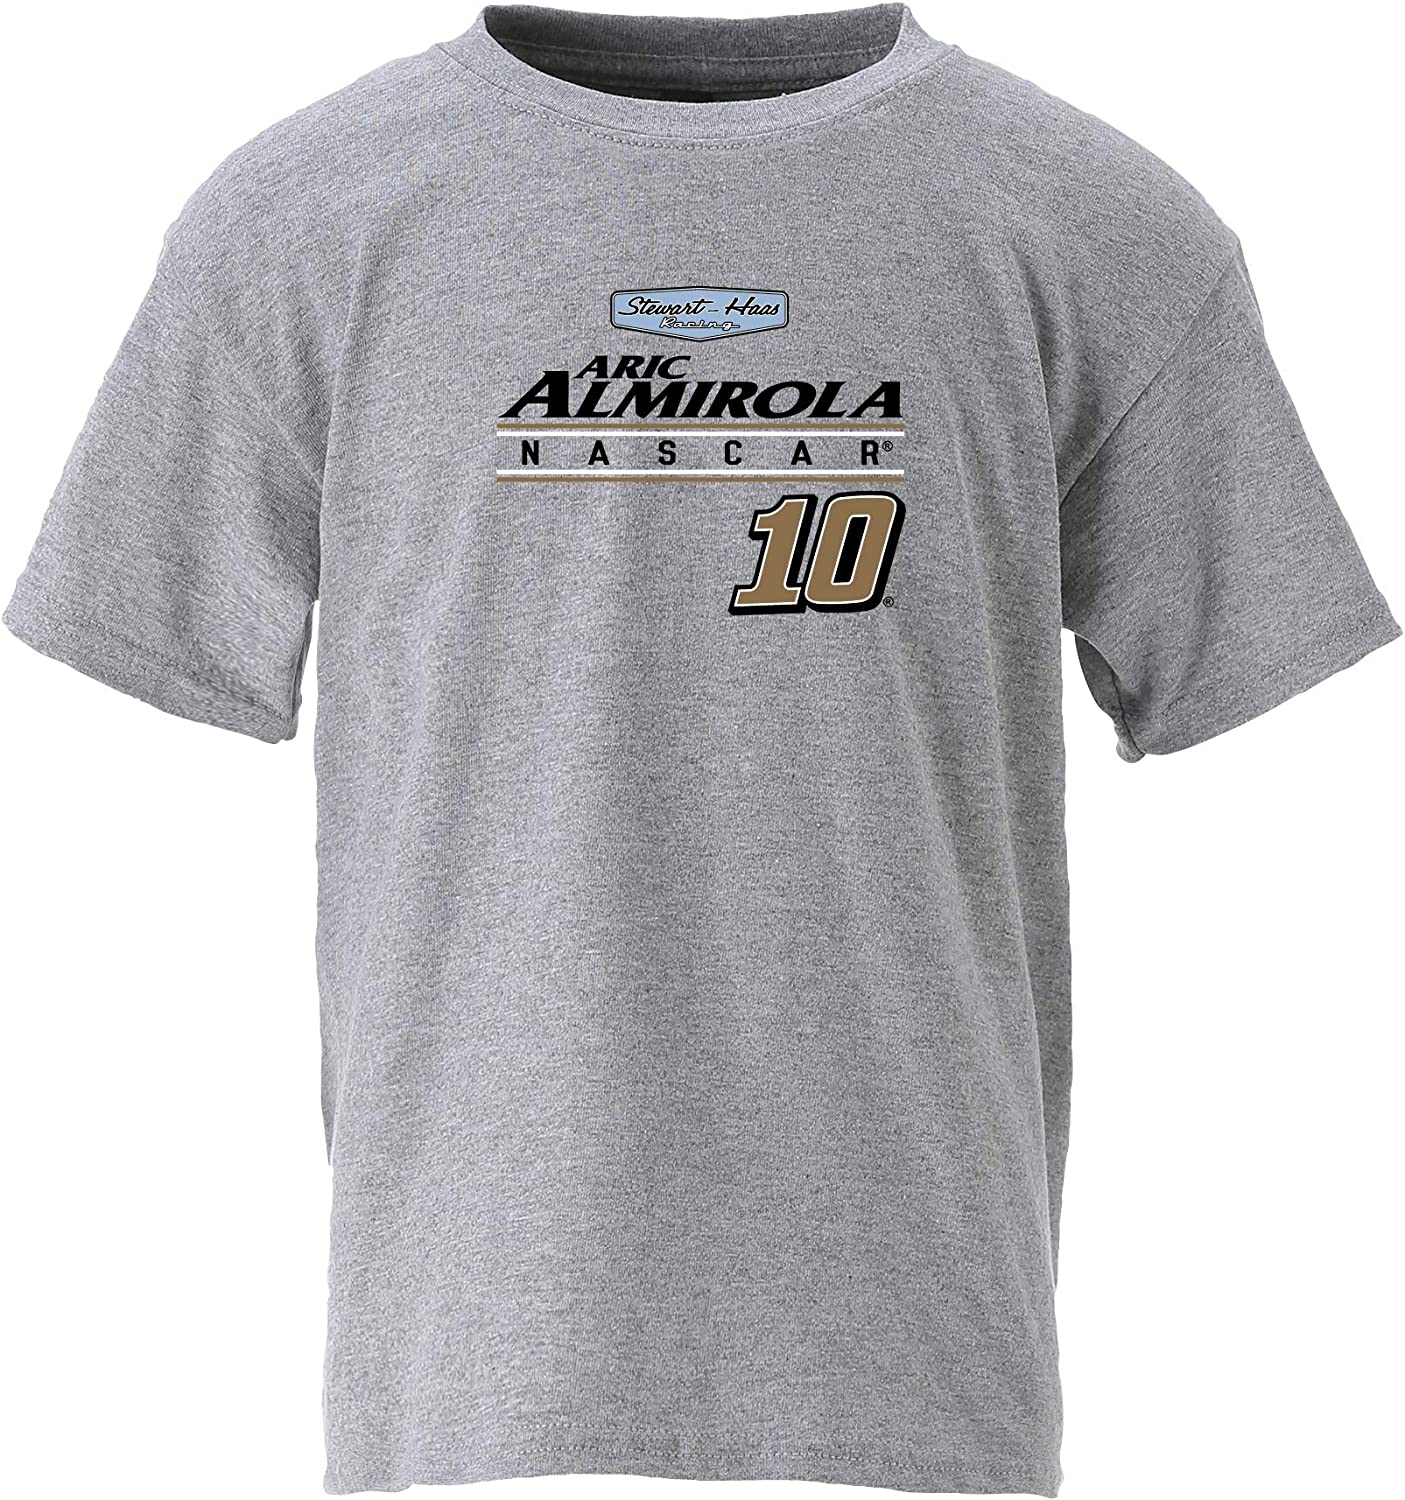 Ouray Sportswear NASCAR Vintage Sheer S//S Tee